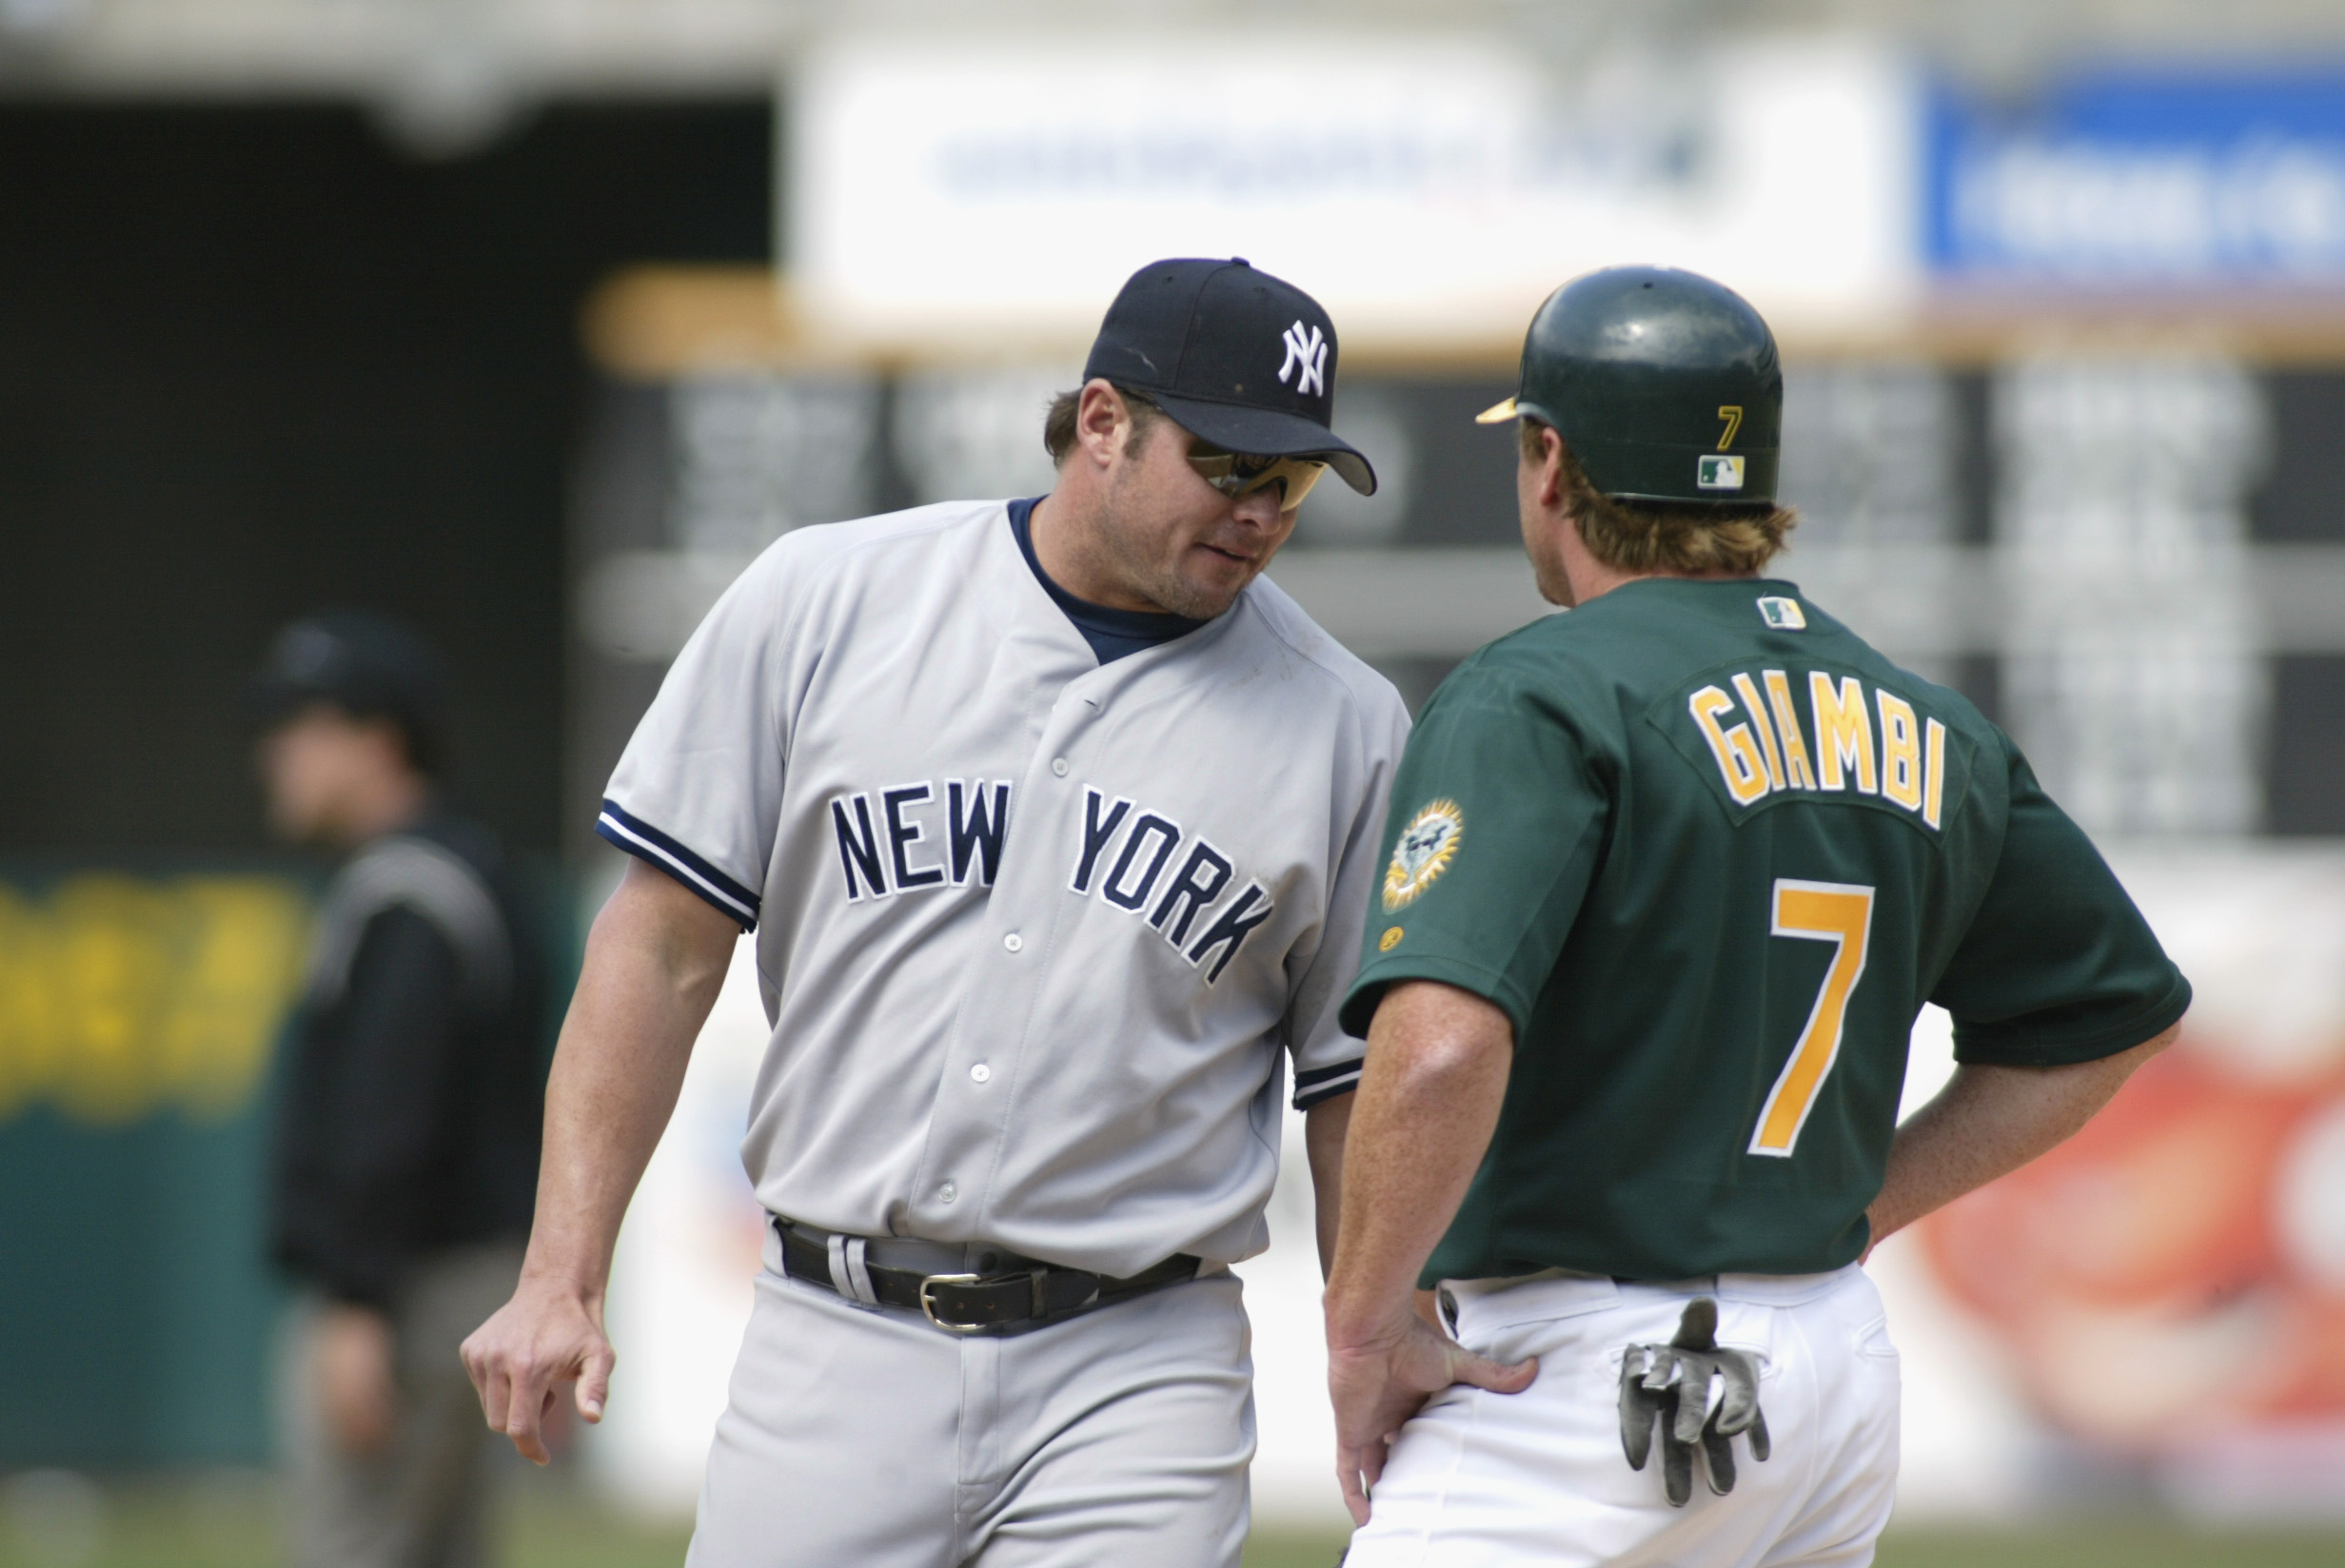 OAKLAND-APRIL 25: Jason Giambi #25 of the New York Yankees chats with brother Jeremy Giambi #7 of the Oakland A's during the game at Network Associates Coliseum in Oakland, California on April 25, 2002. The A's won 6-2. (Photo by Jed Jacobsohn/Getty Image